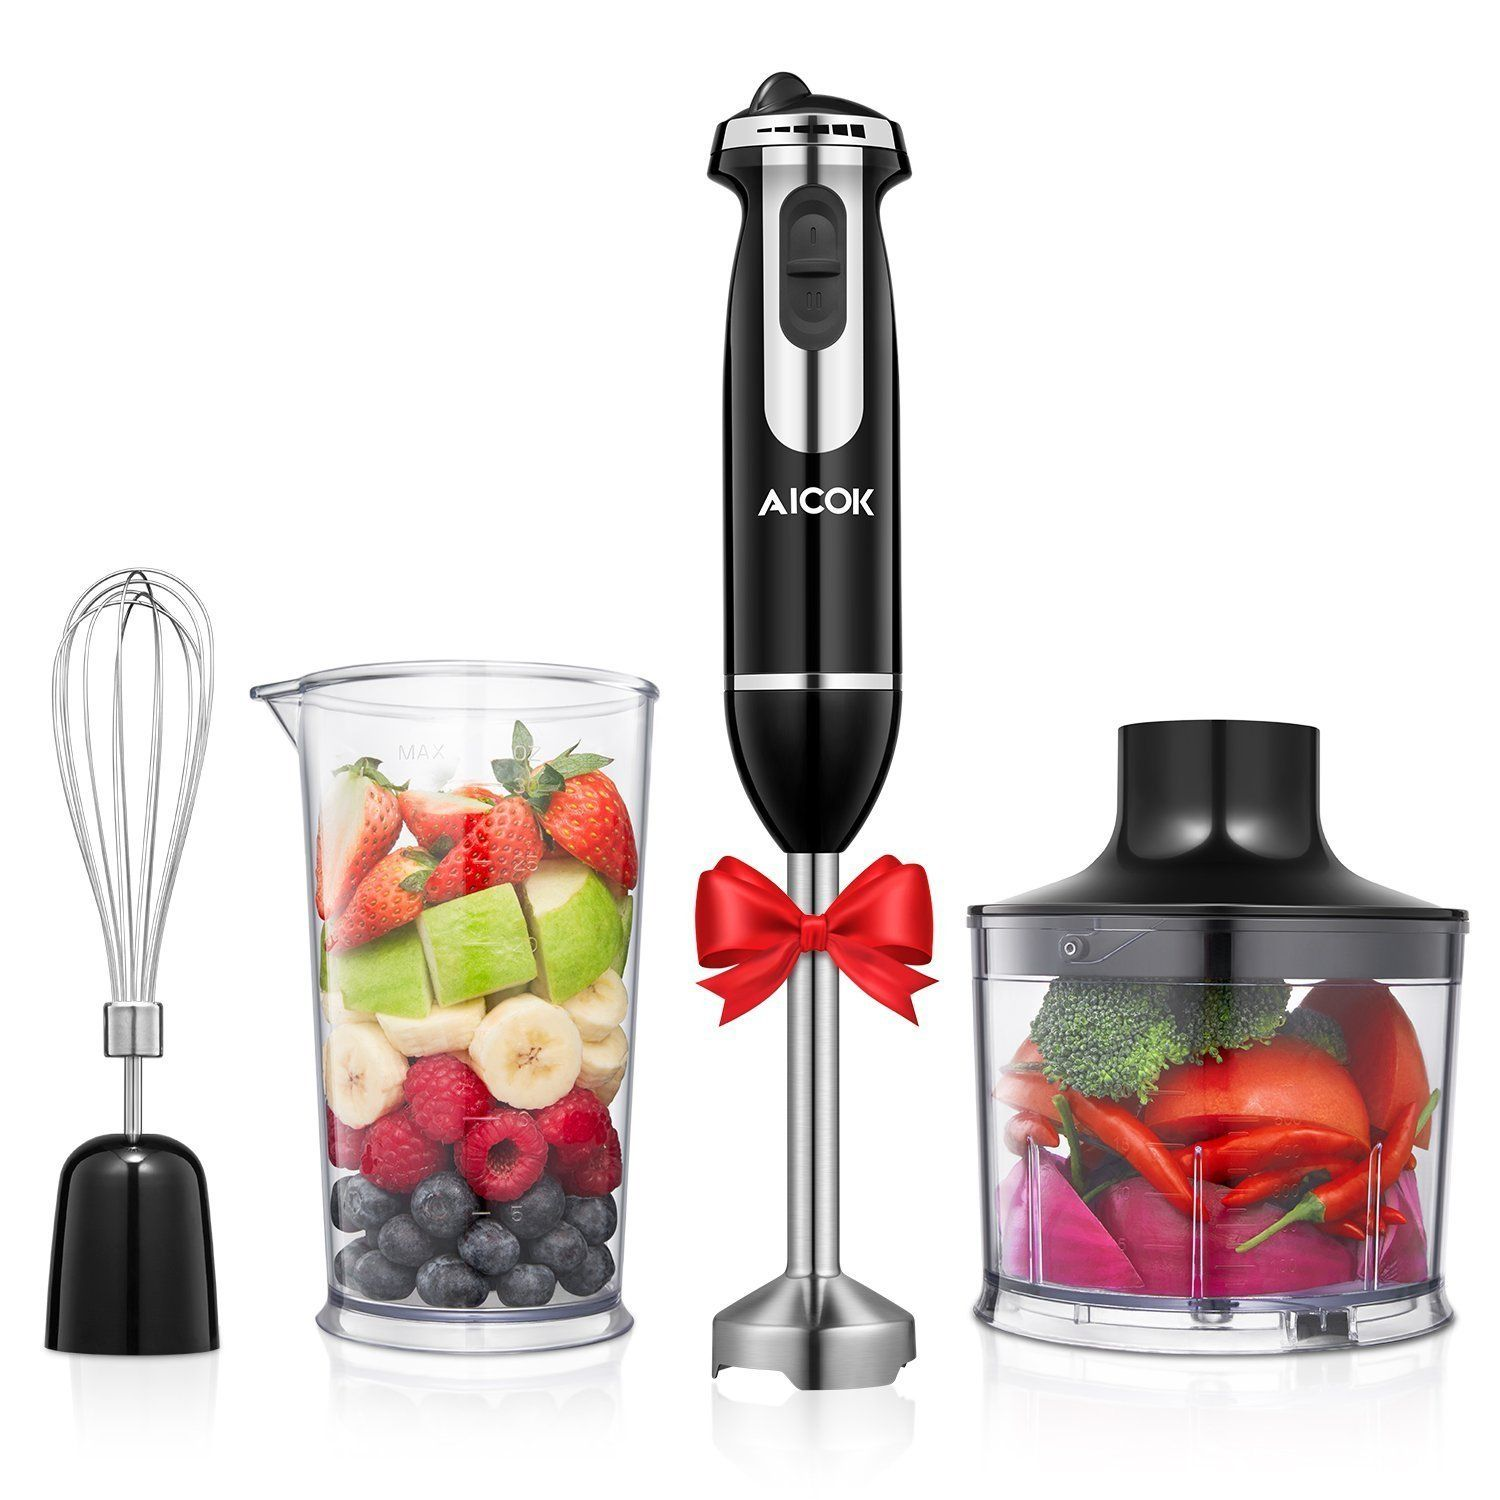 Aicok immersion 4in1 stick blender with 6 speed control